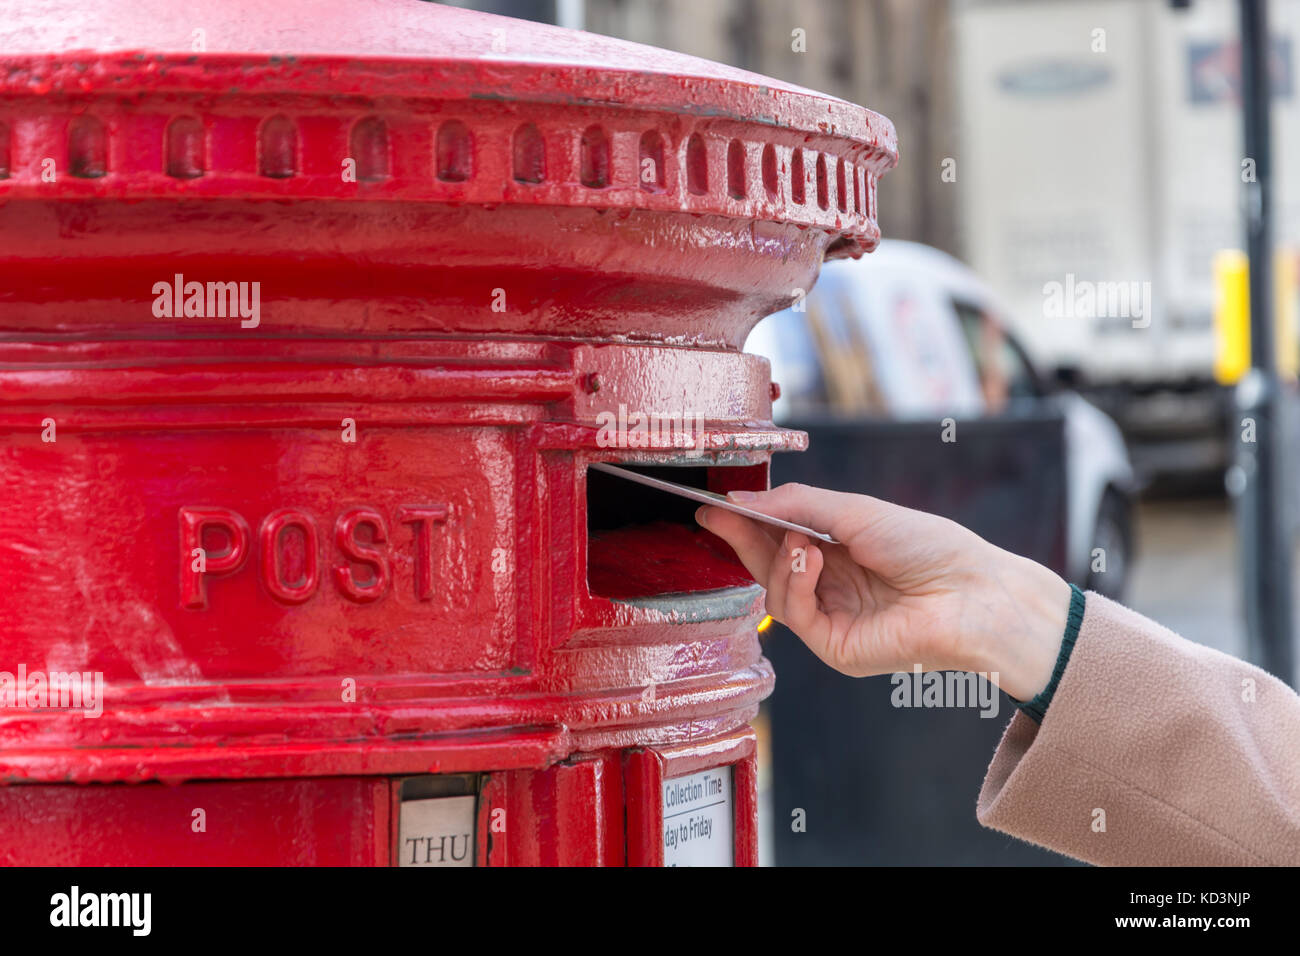 Throwing a letter in a red British post box from the side - Stock Image